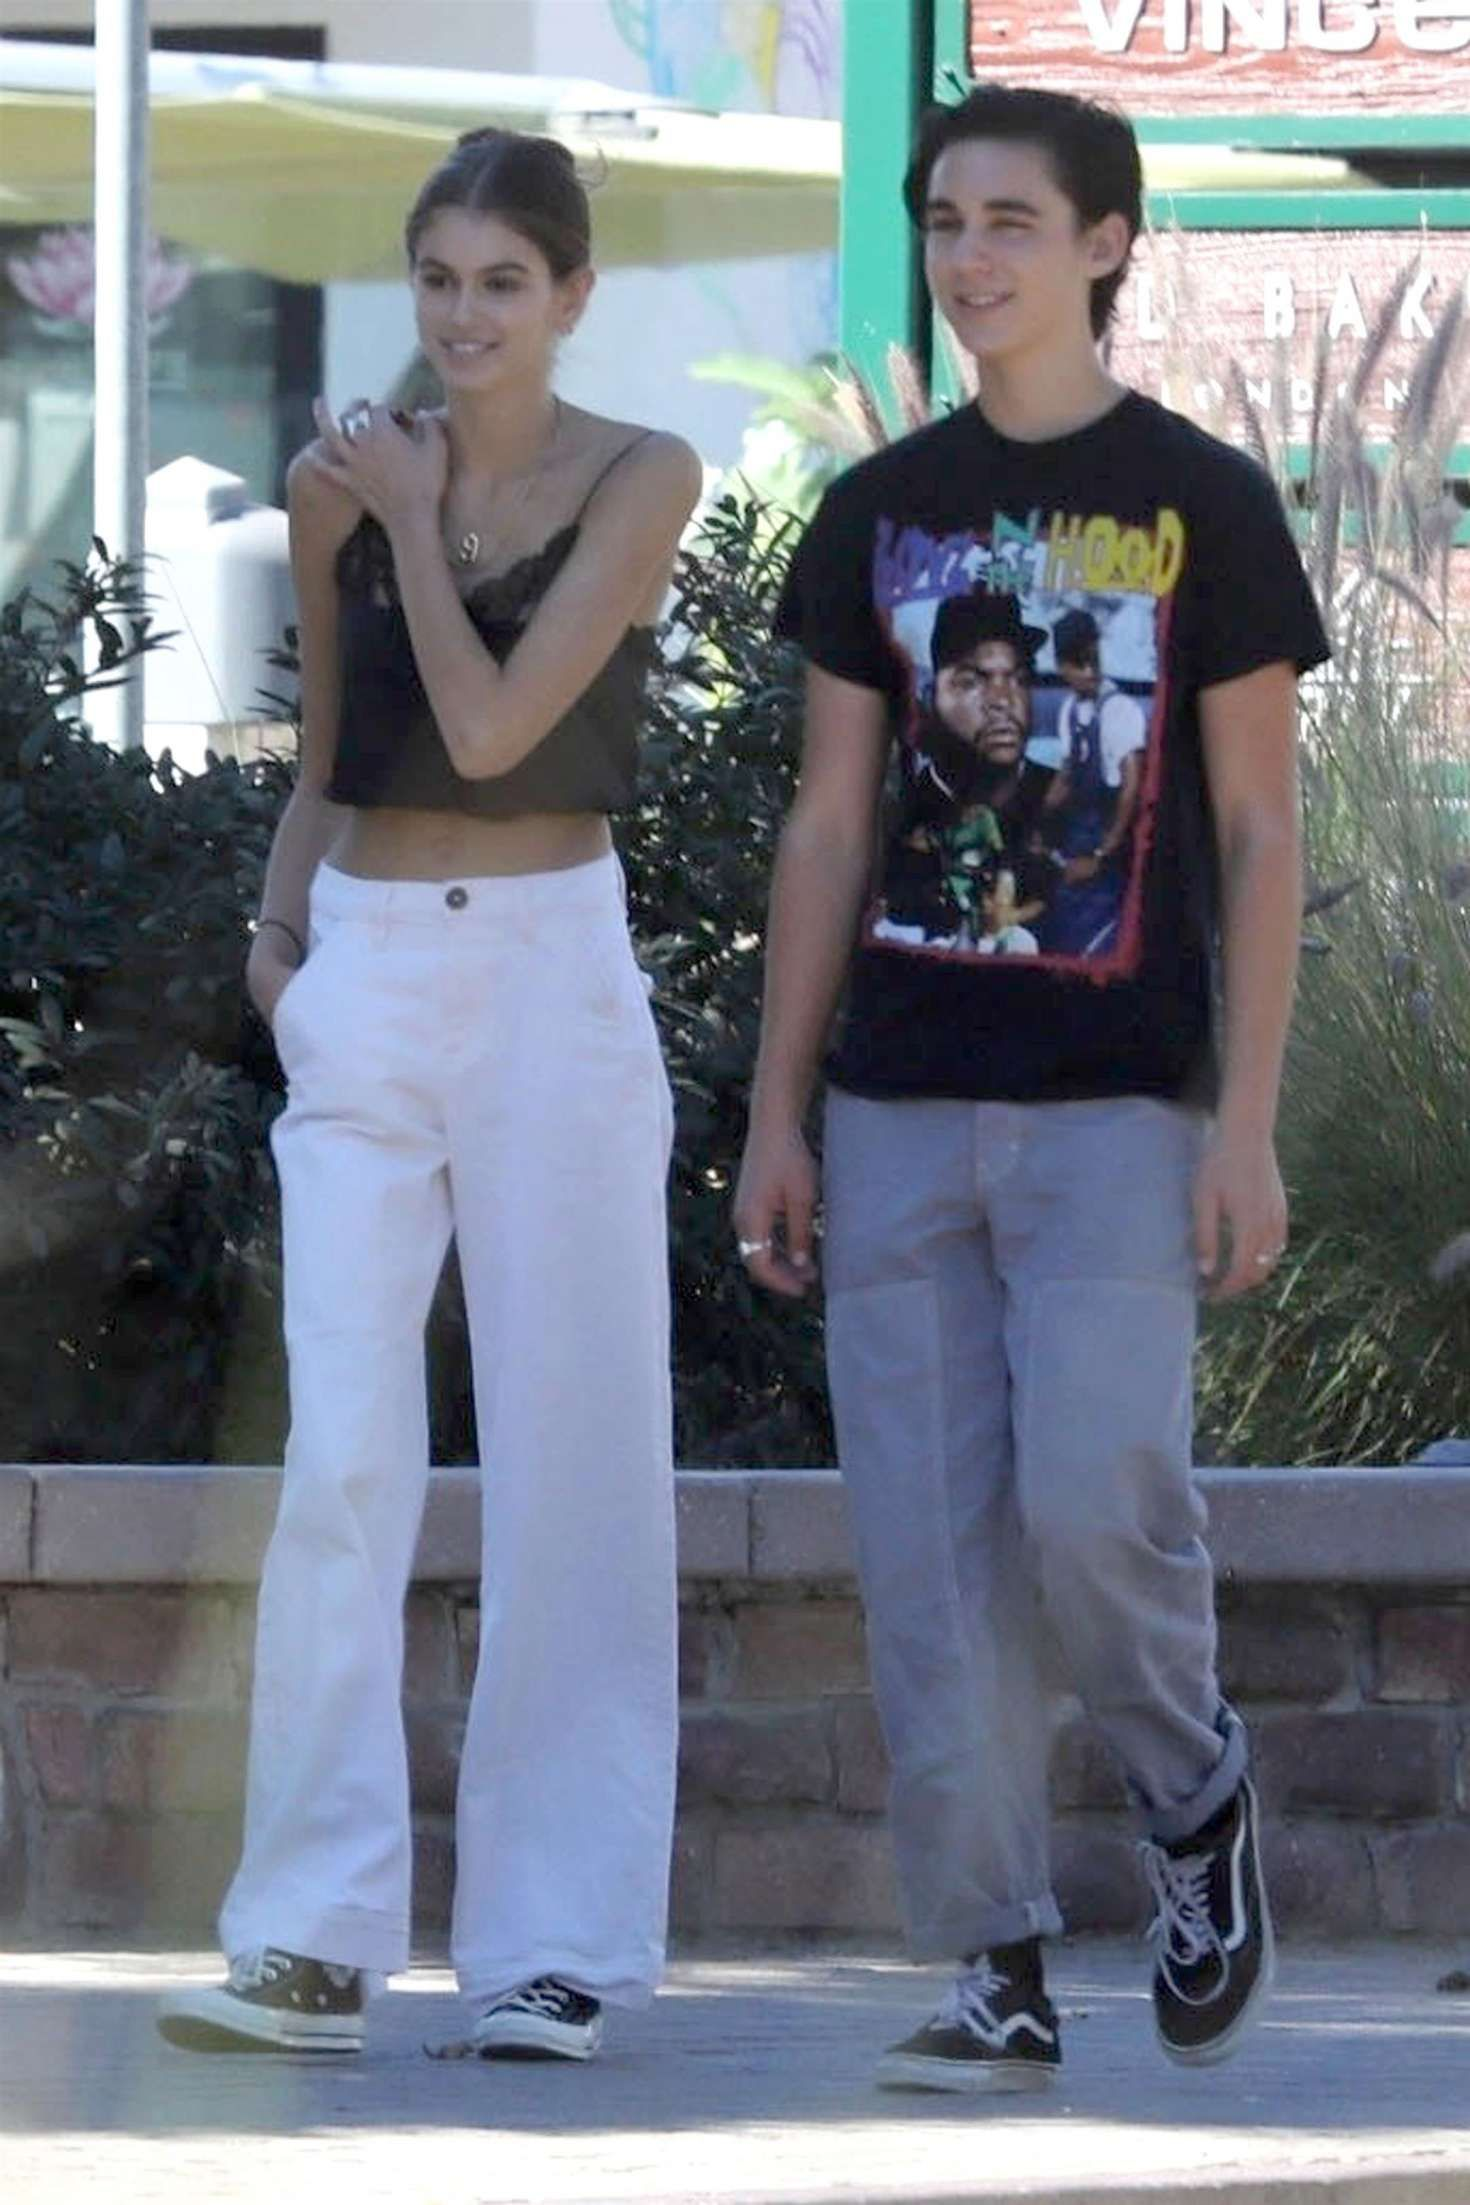 76d1dffd08a Kaia Gerber - With a friend out in Malibu